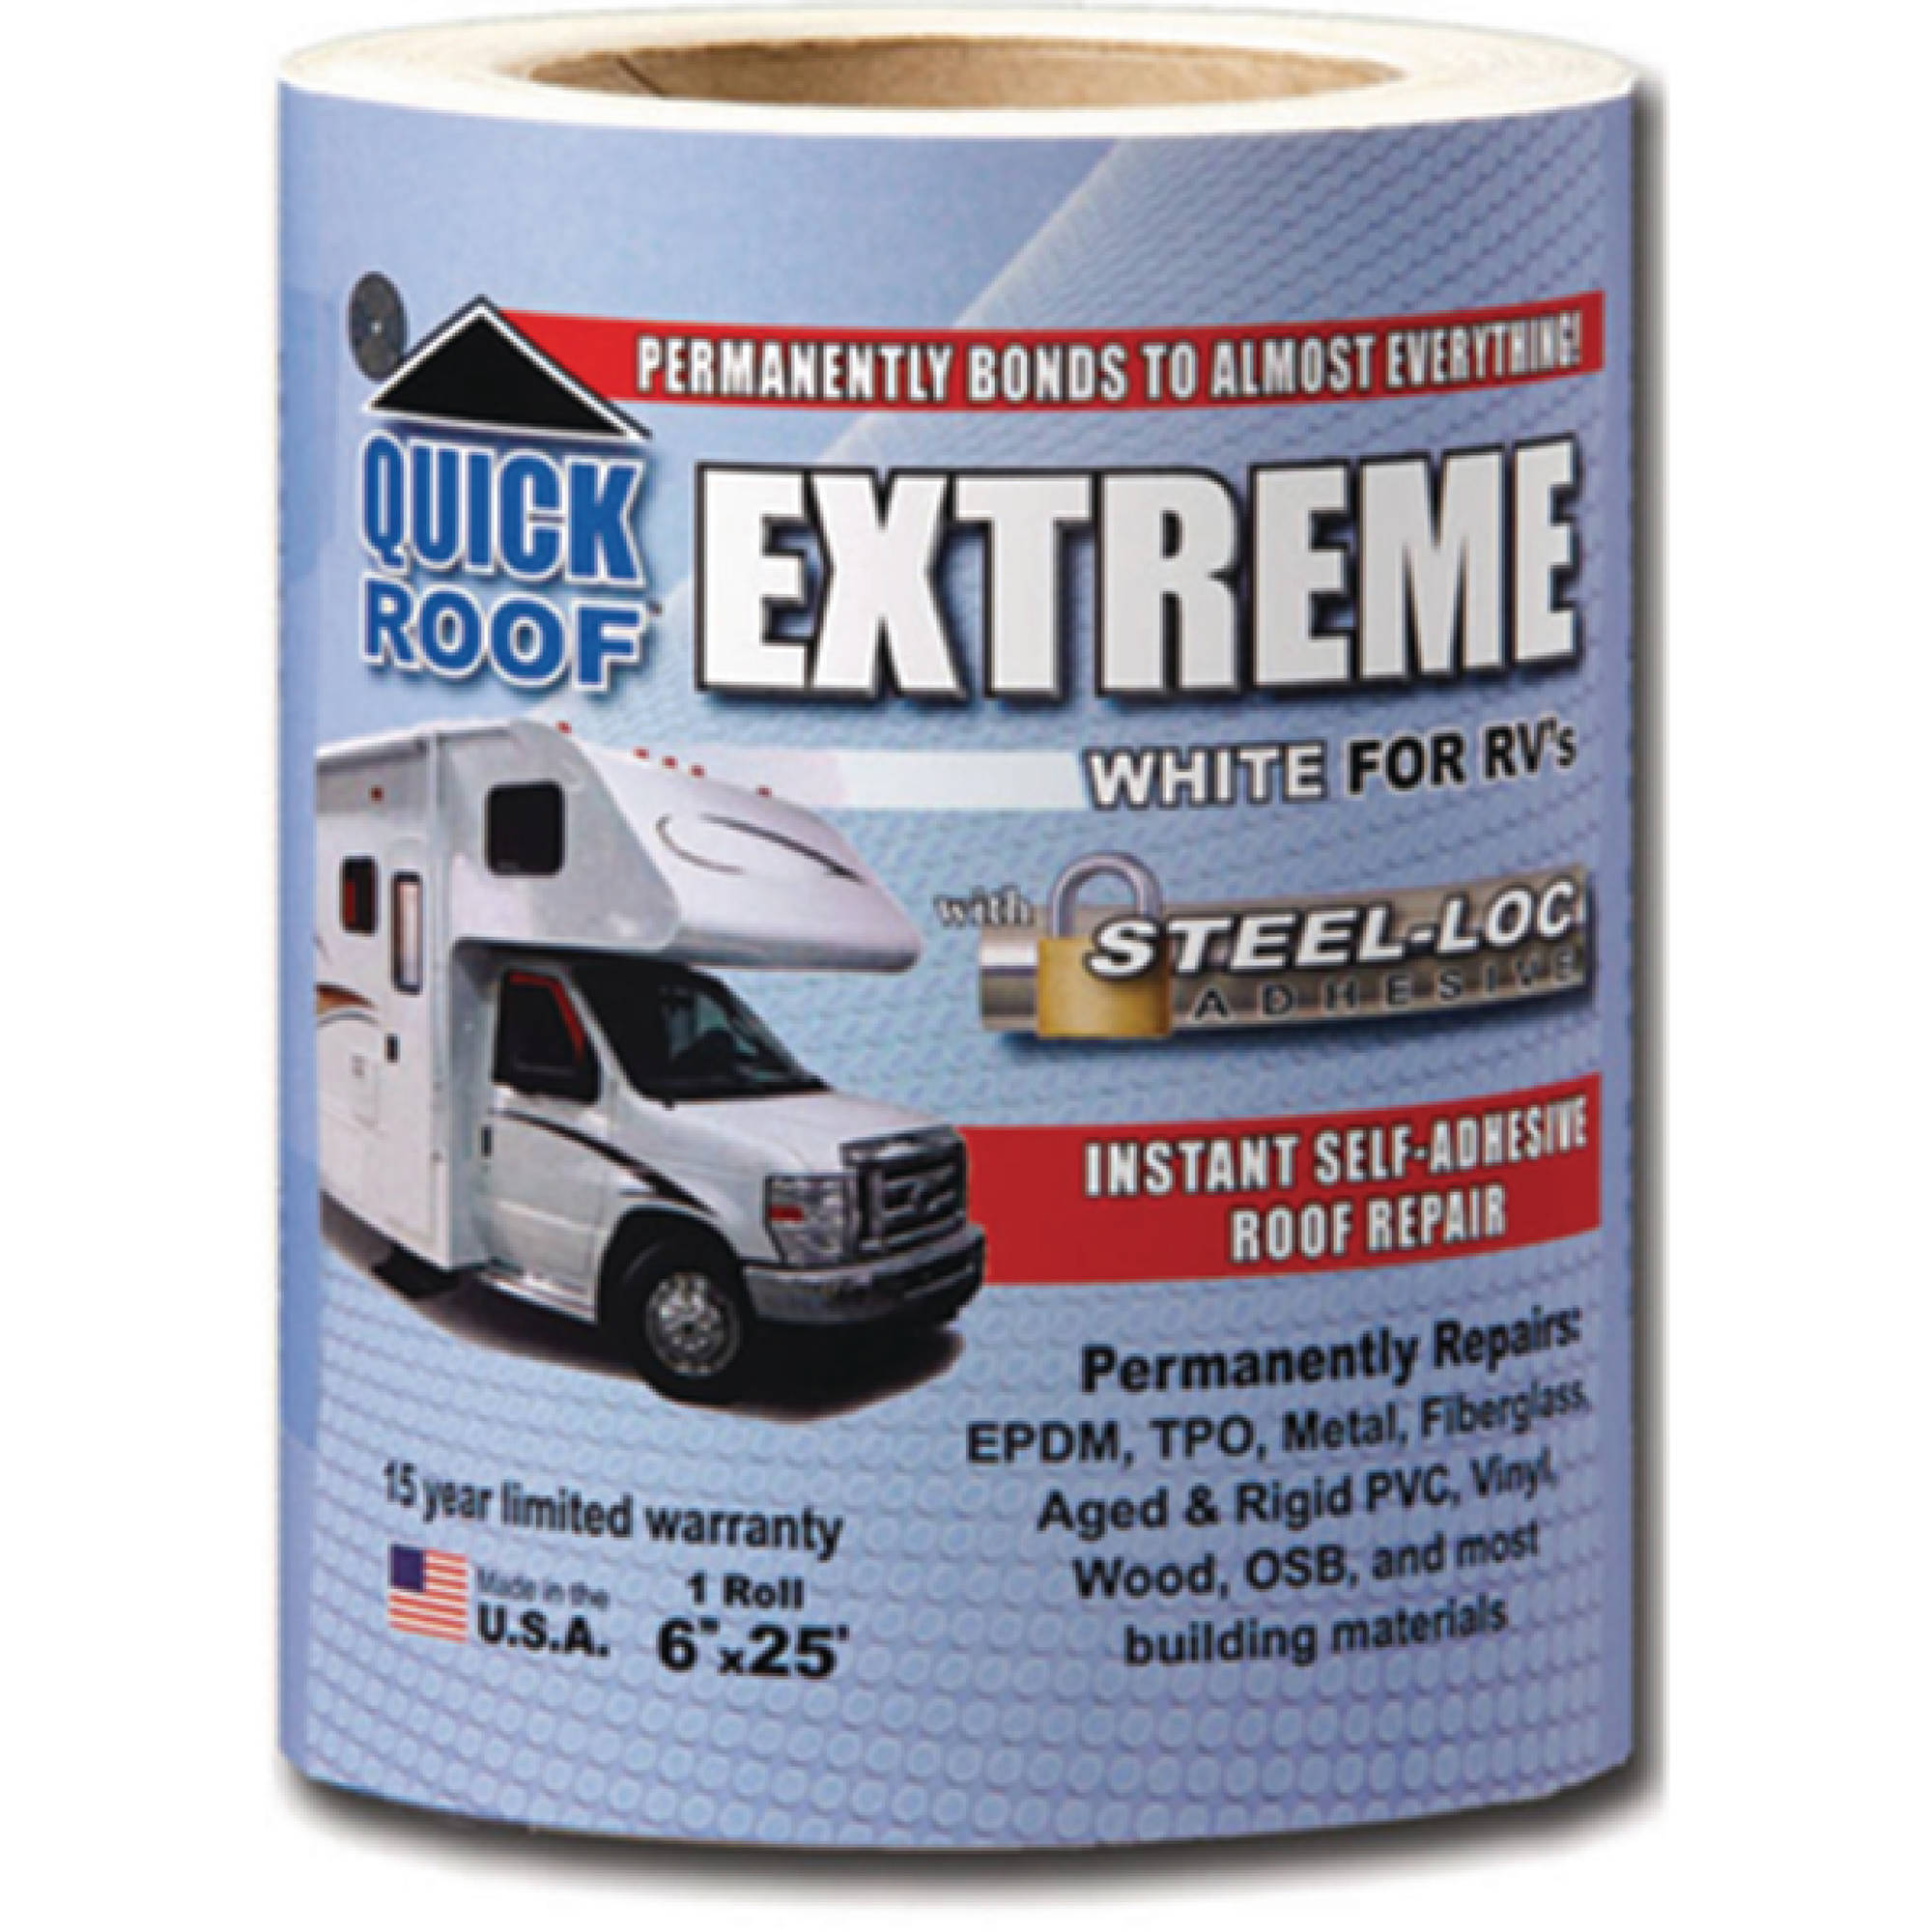 Quick Roof Extreme White For Rvs Motorhome Recreational Vehicles And Solar System On Pinterest